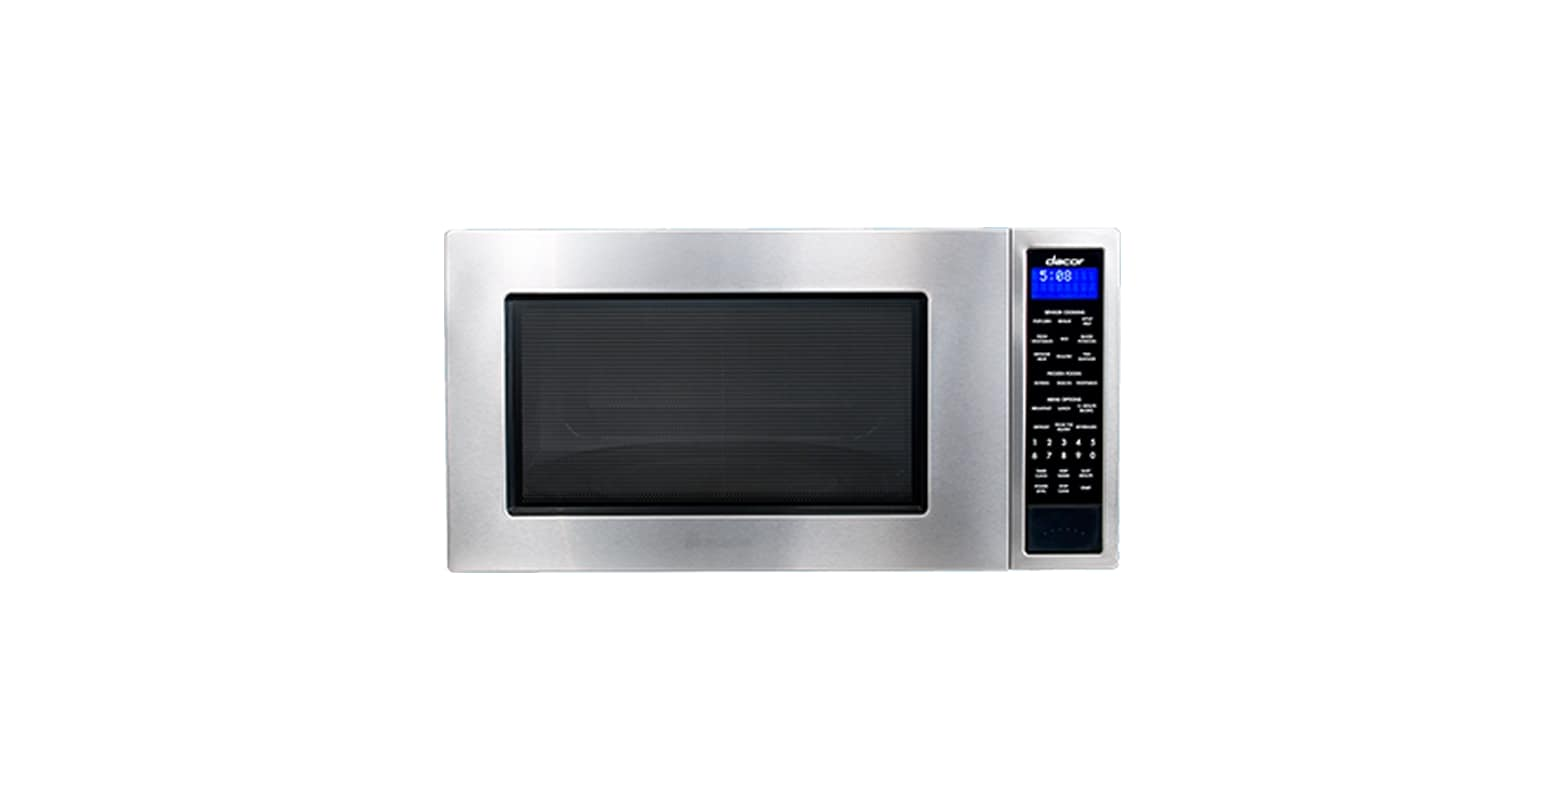 Dacor DMW2420 24 Inch Wide 2 Cu. Ft. 1100 Watt Heritage Countertop Microwave photo